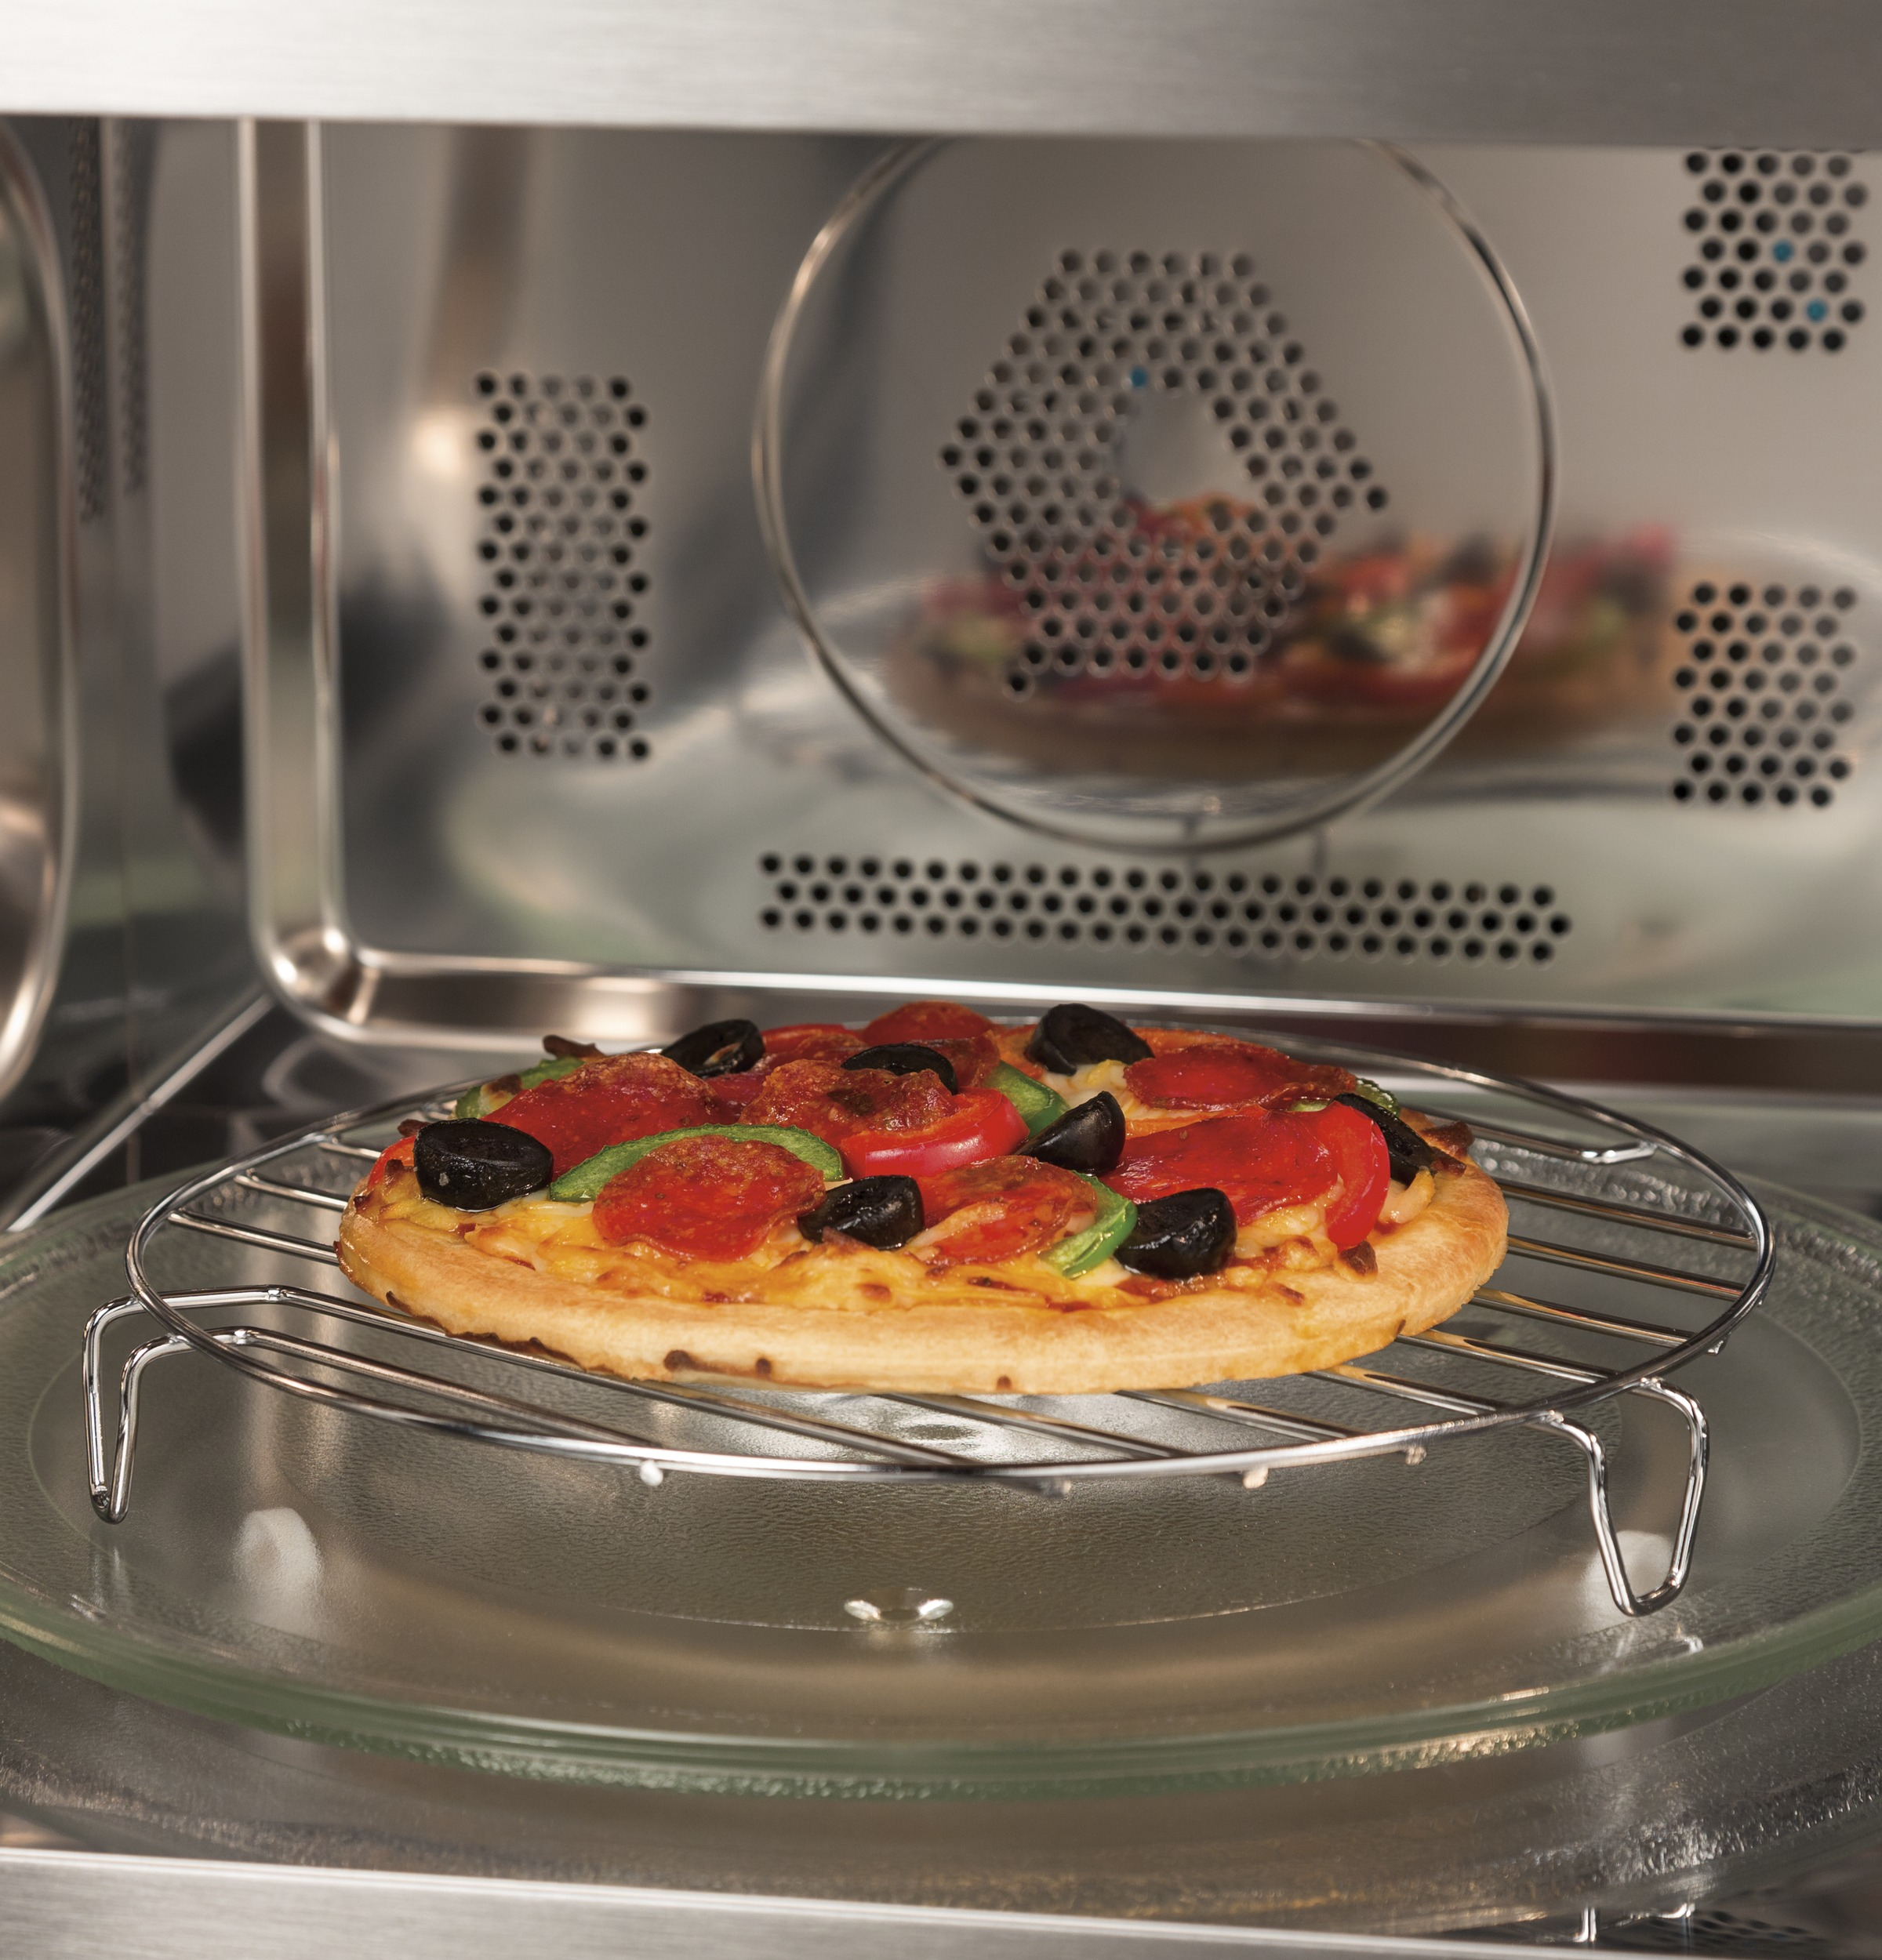 Model: PEB9159DJWW | GE Profile GE Profile™ 1.5 Cu. Ft. Countertop Convection/Microwave Oven